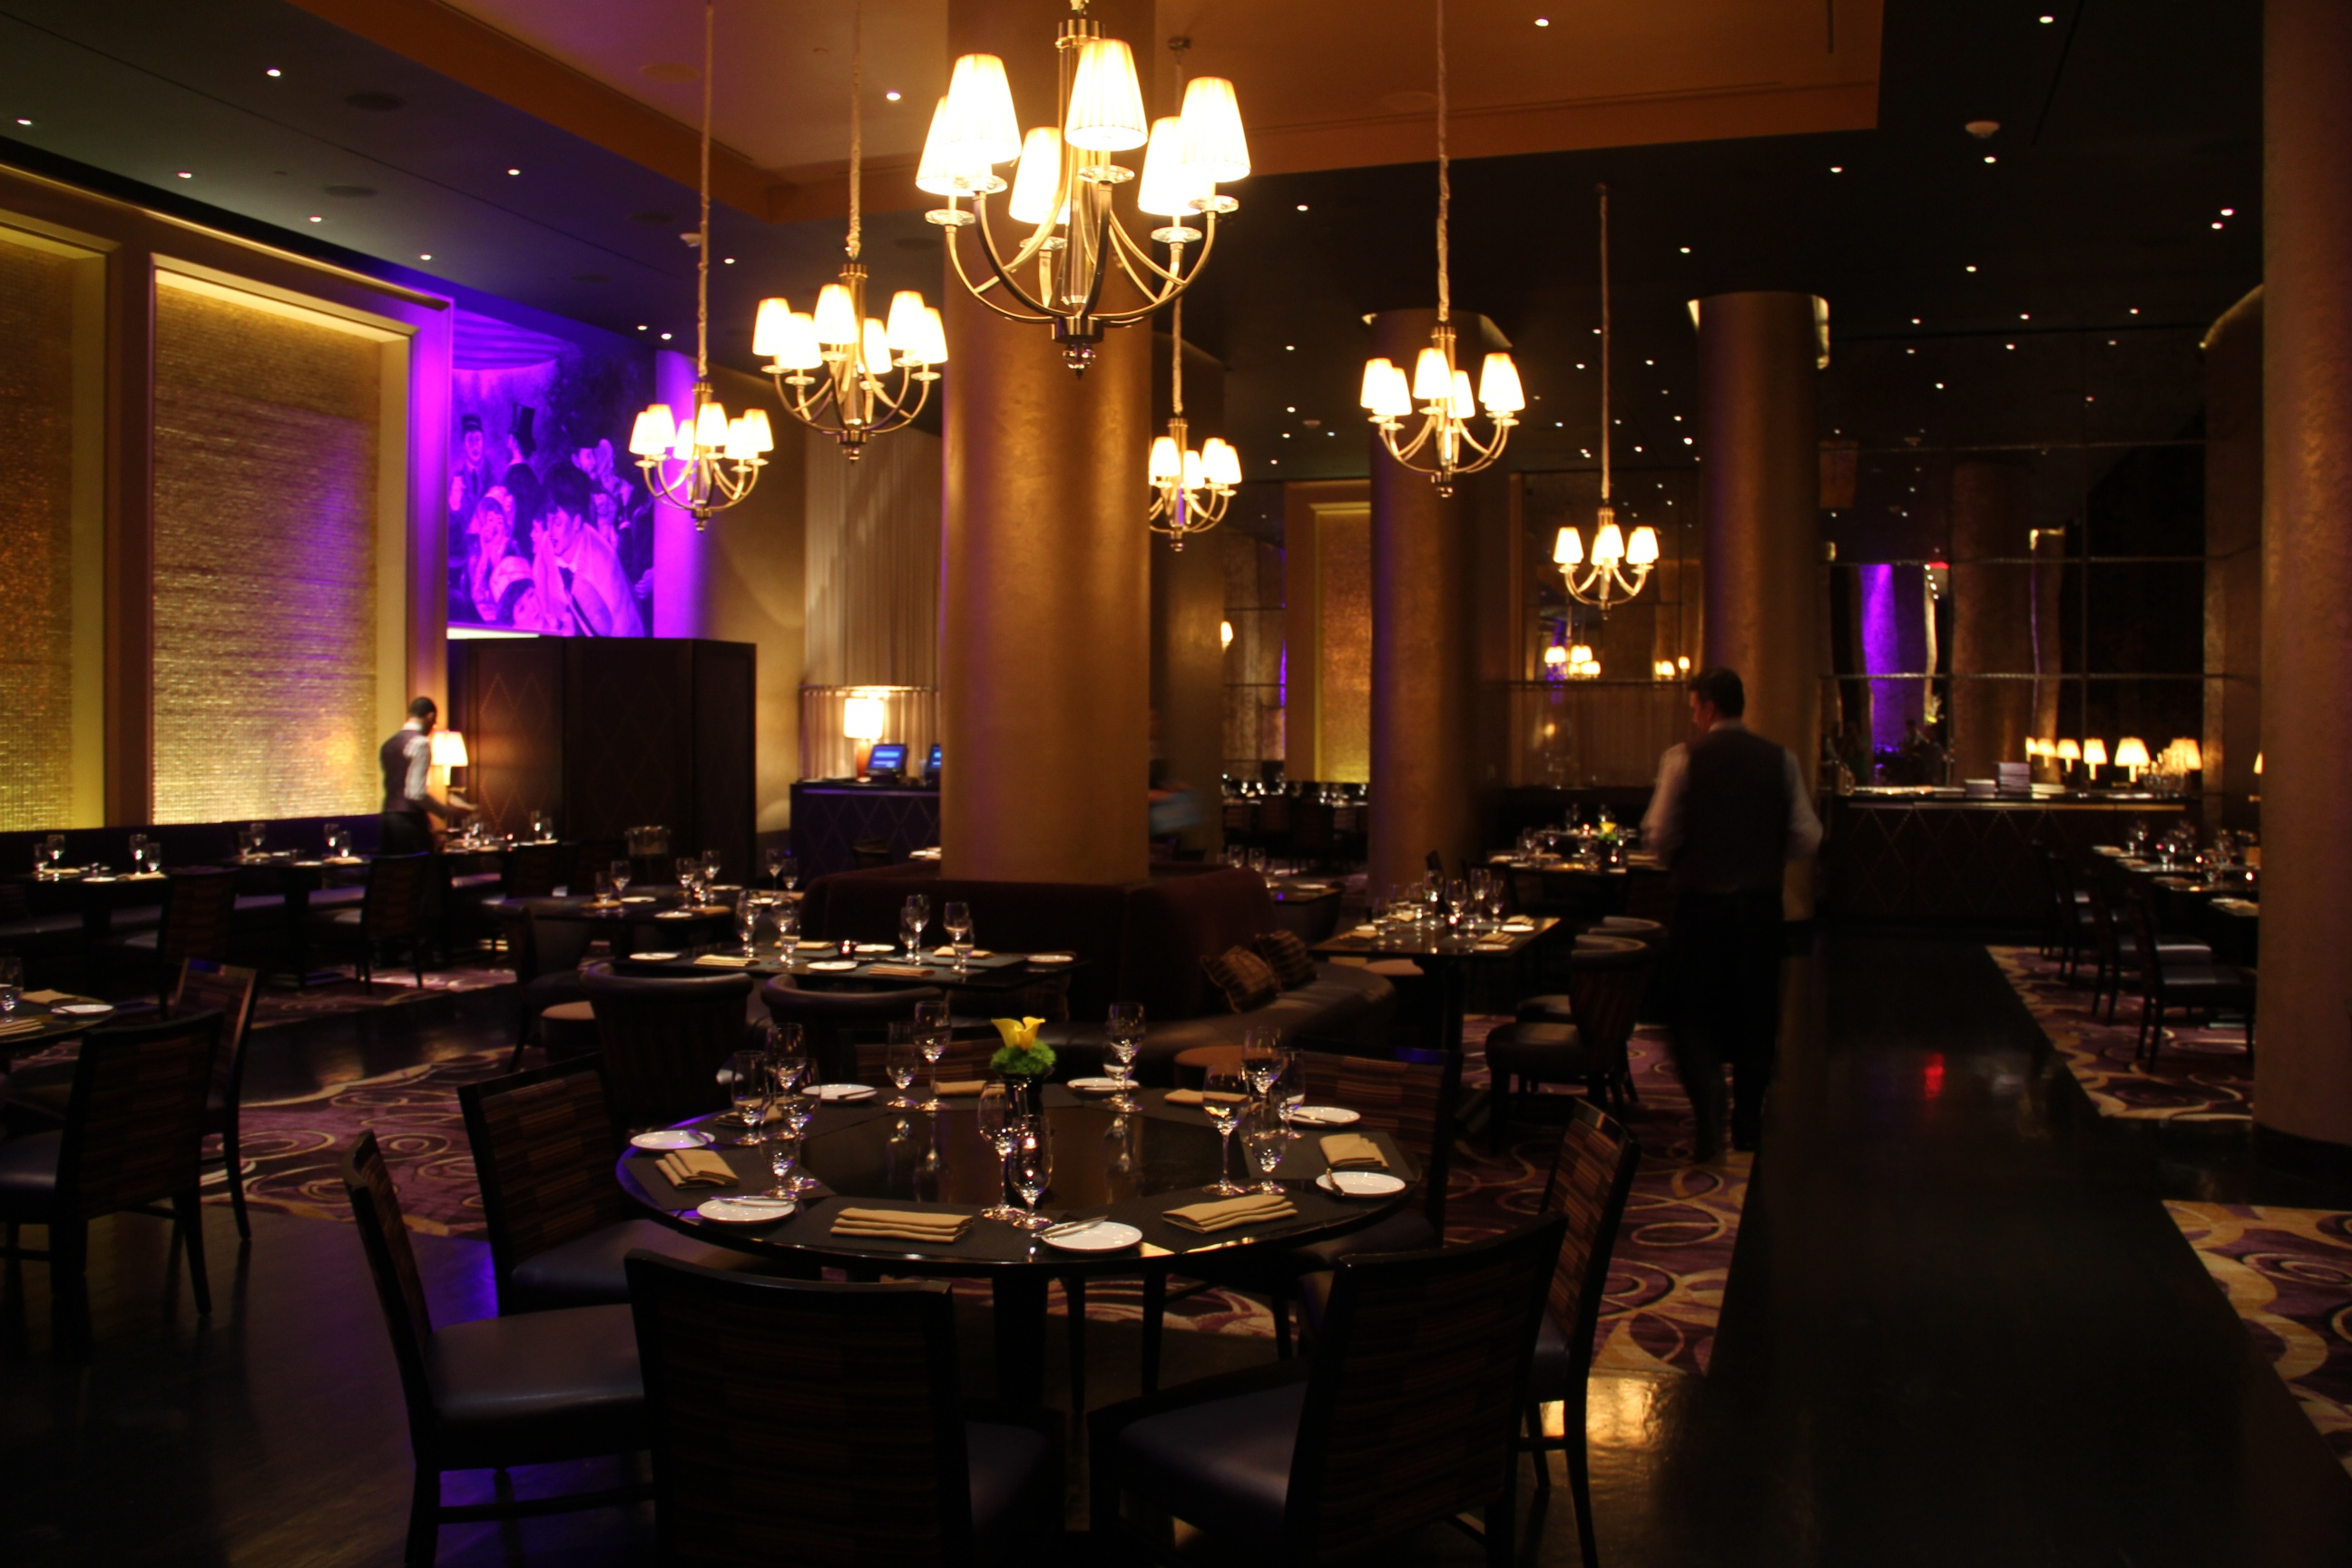 Need an absinthe bar head to sage restaurant in las vegas for Cuisine conforama las vegas